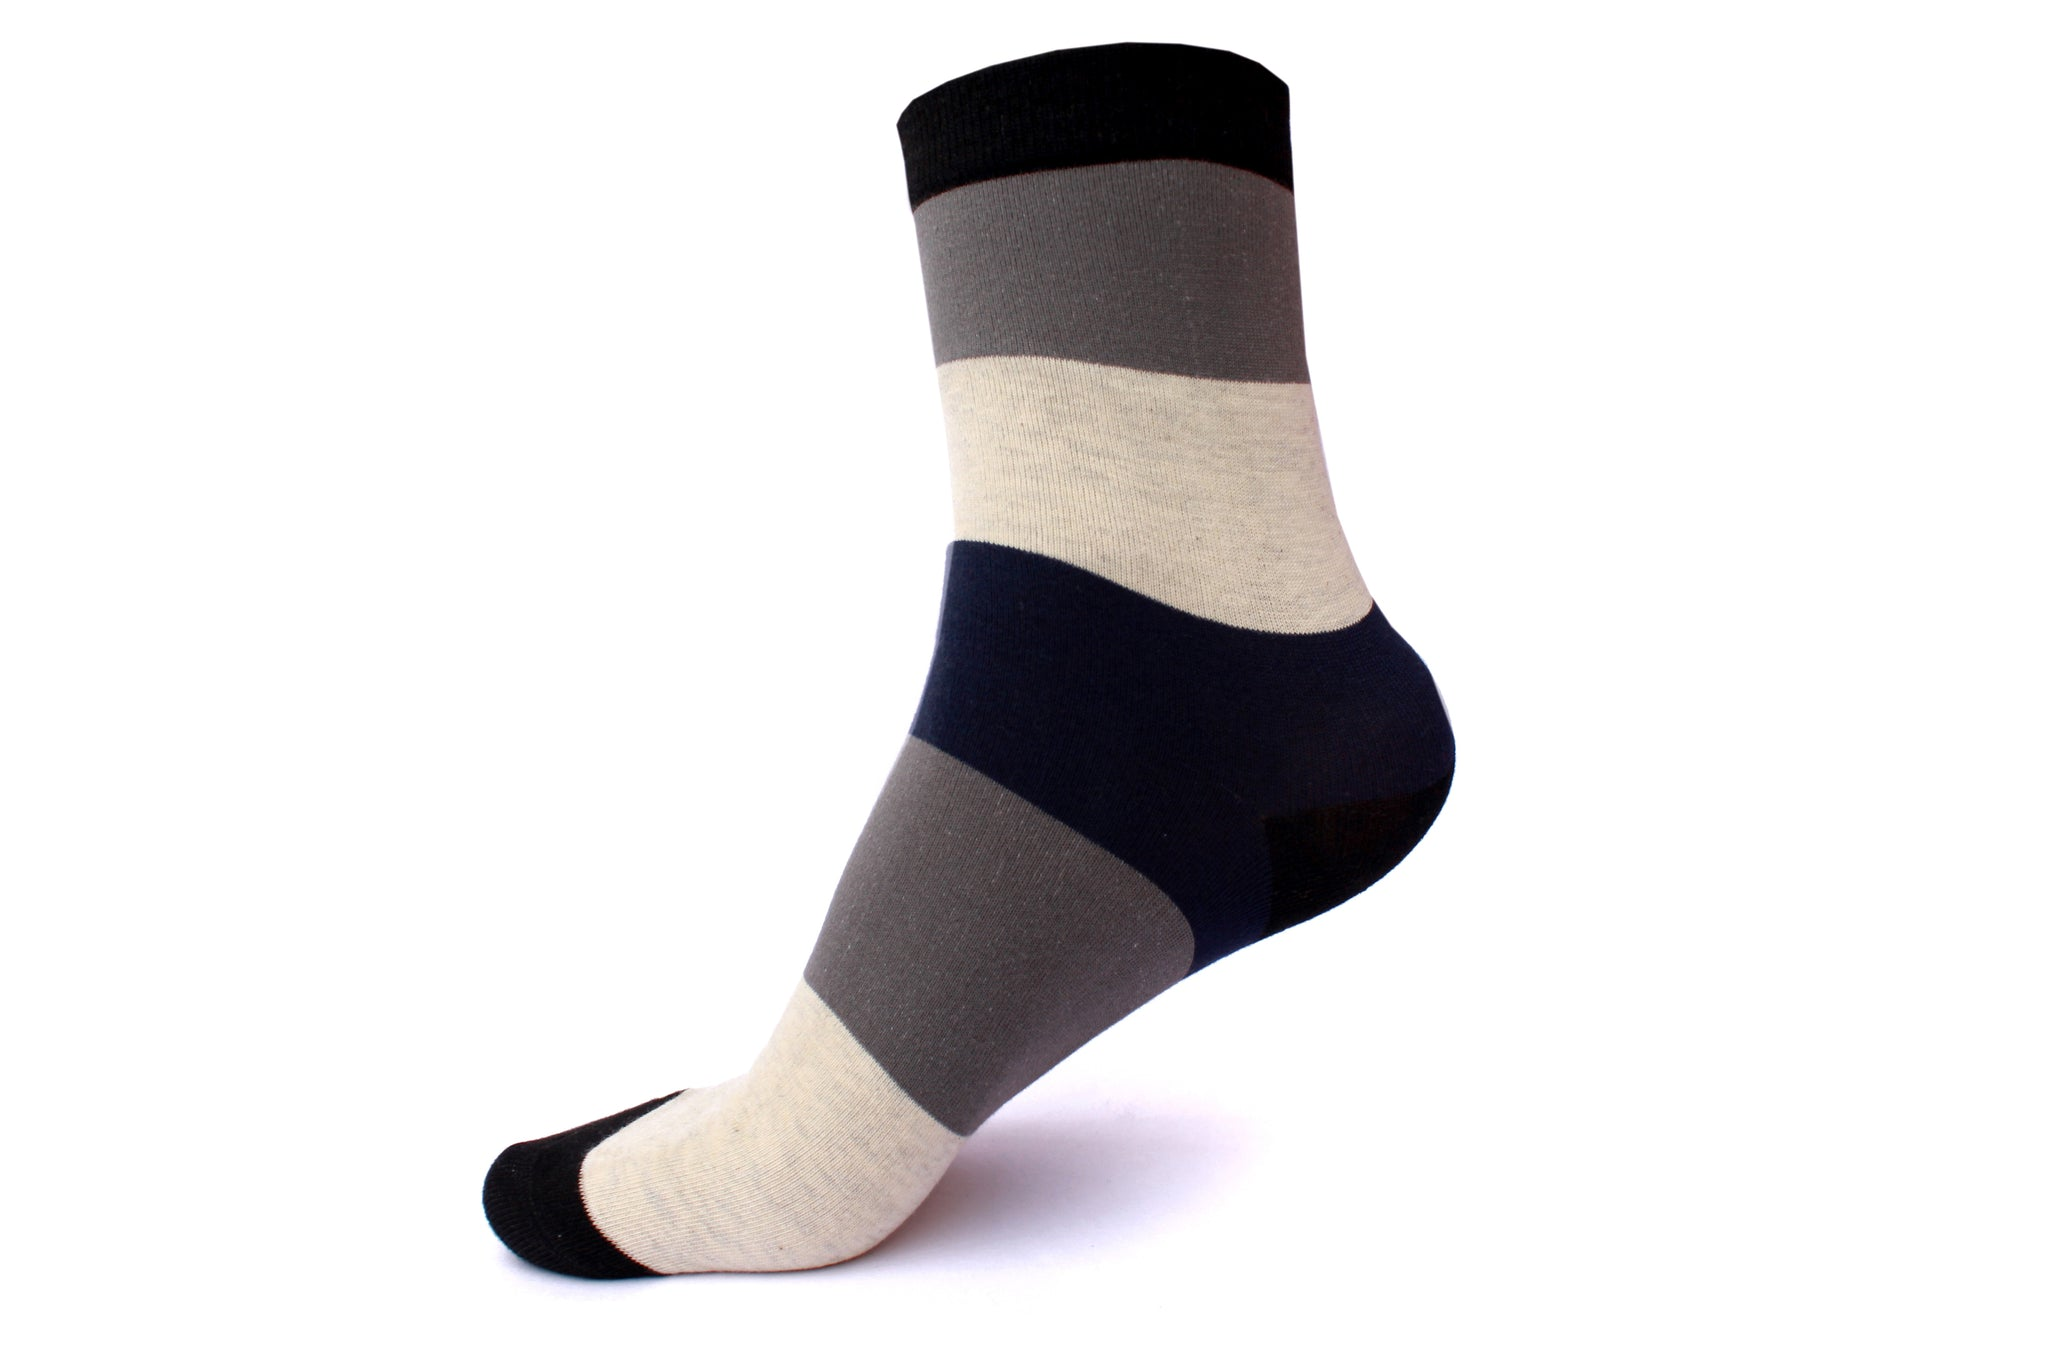 Men's Chalk Breathable Cotton socks